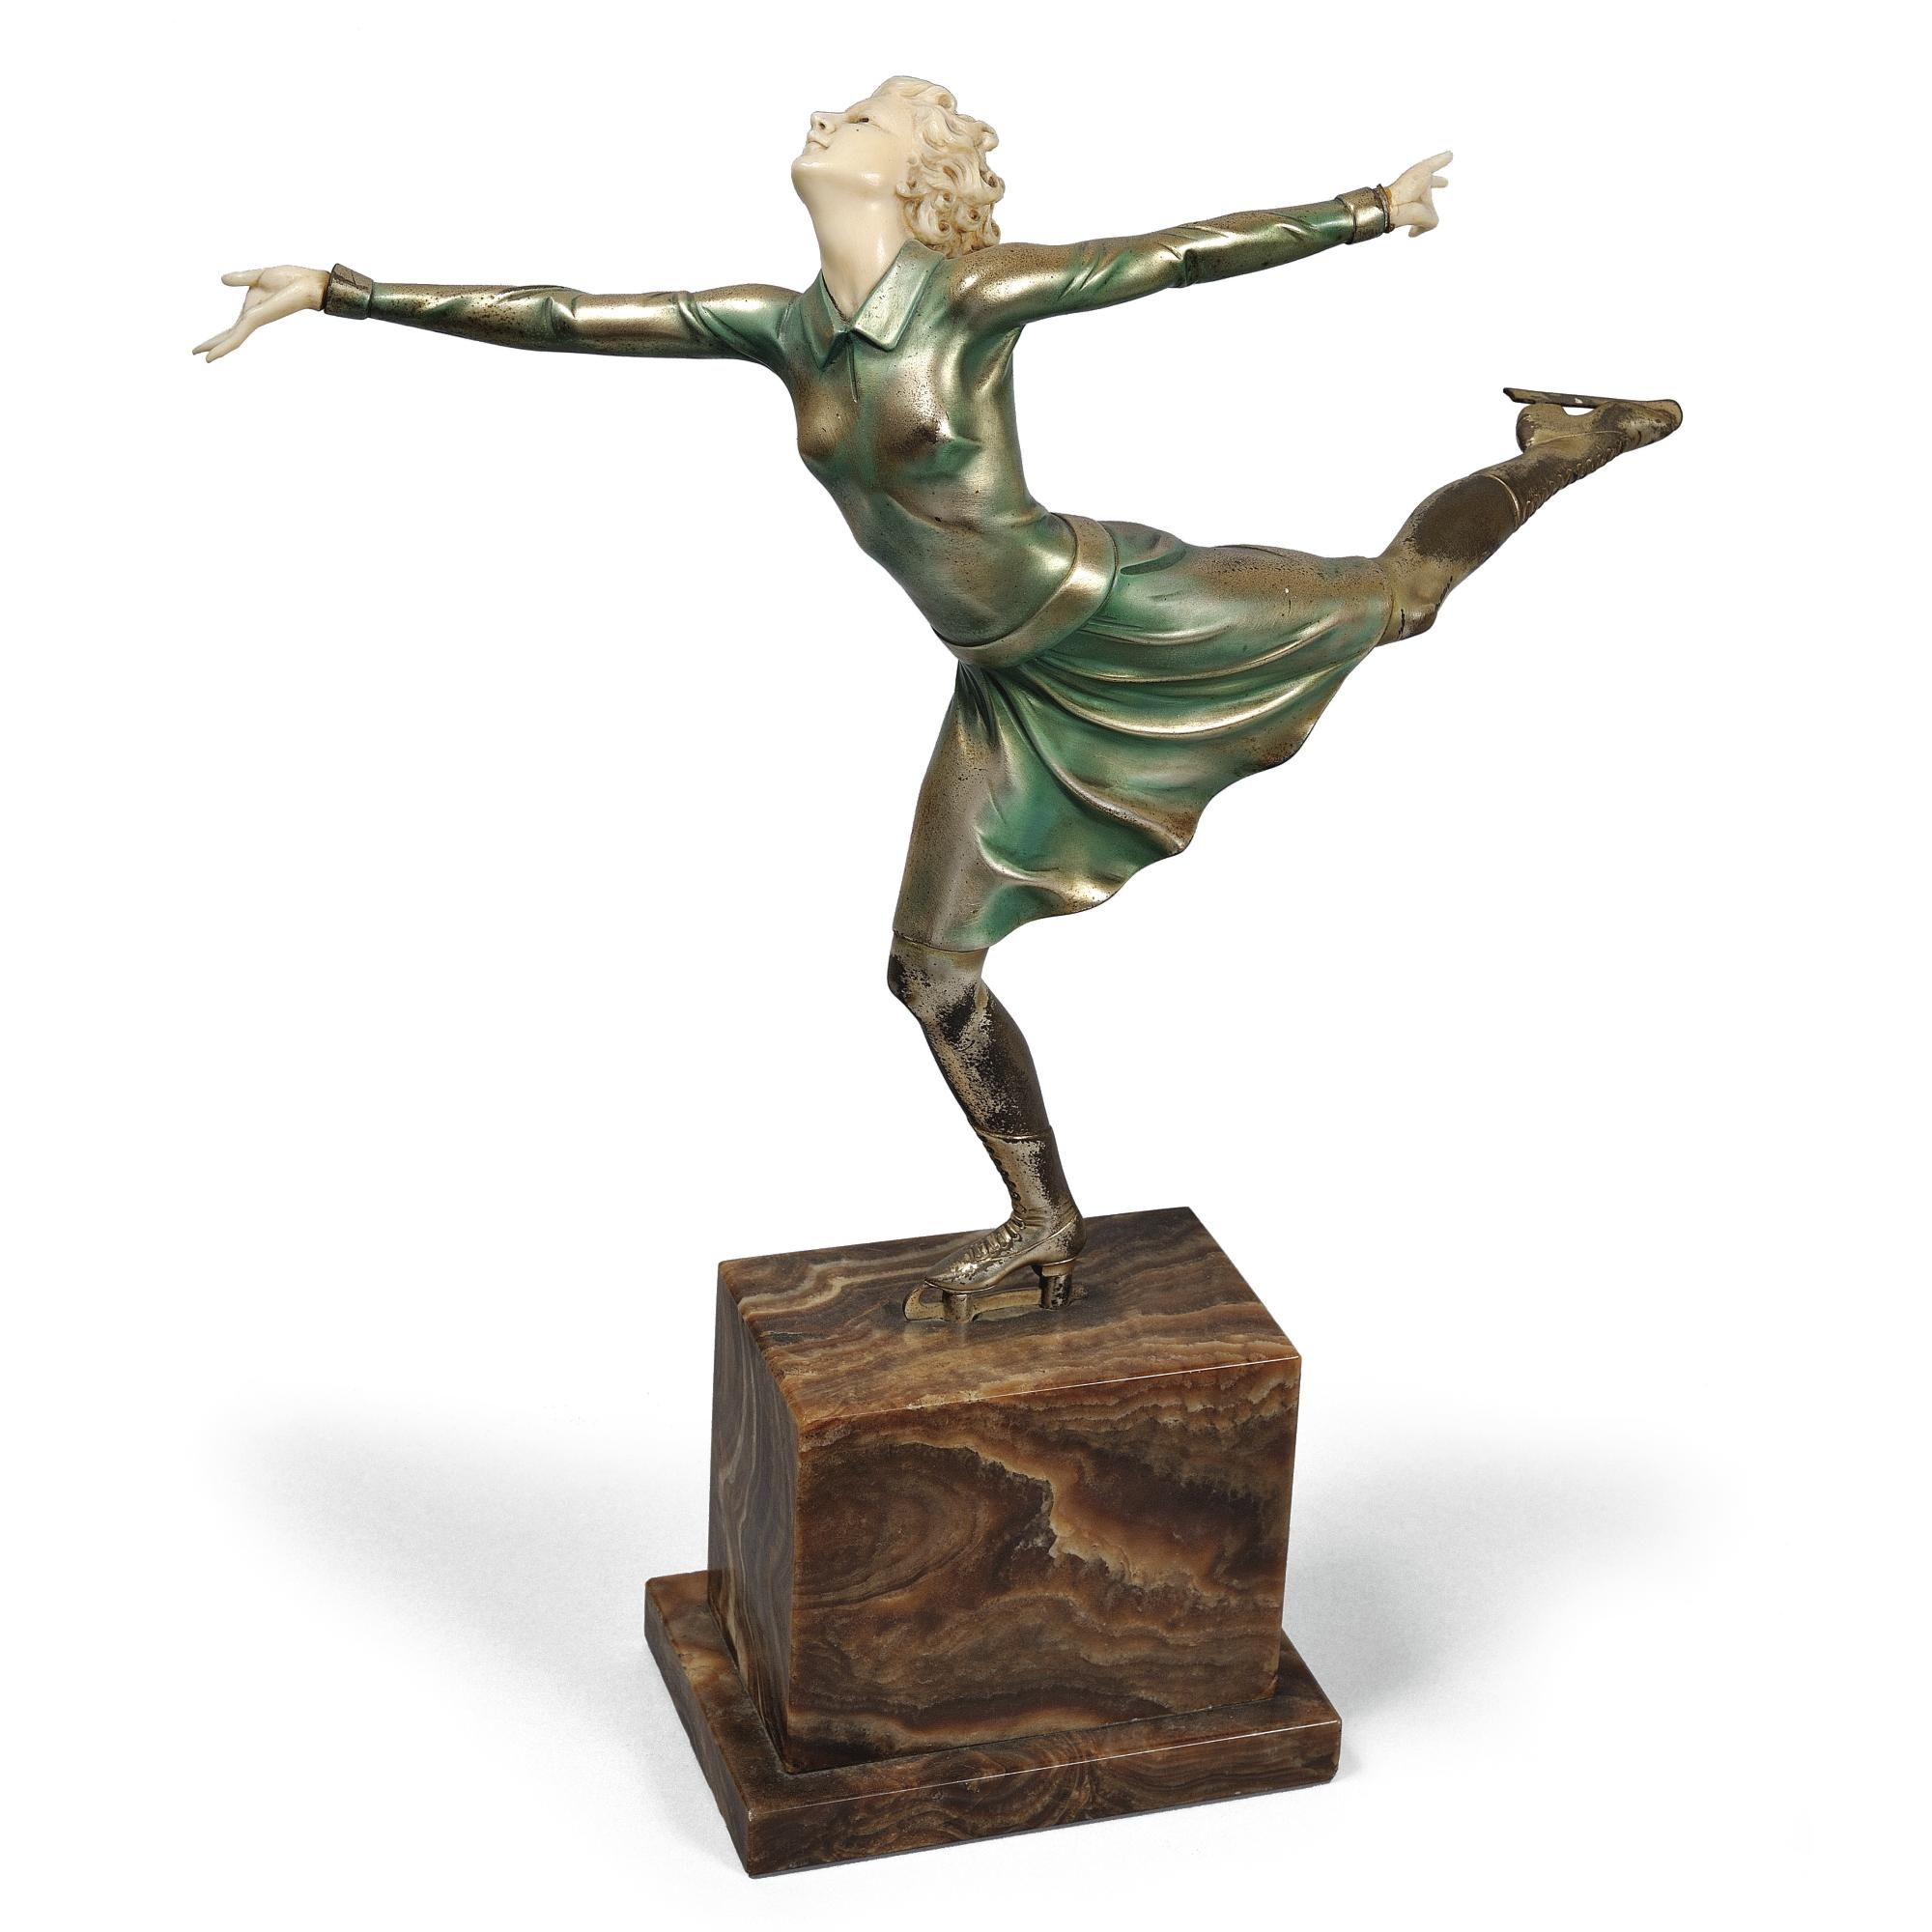 Ferdinand Preiss bronze and ivory figure of a | Deco statue